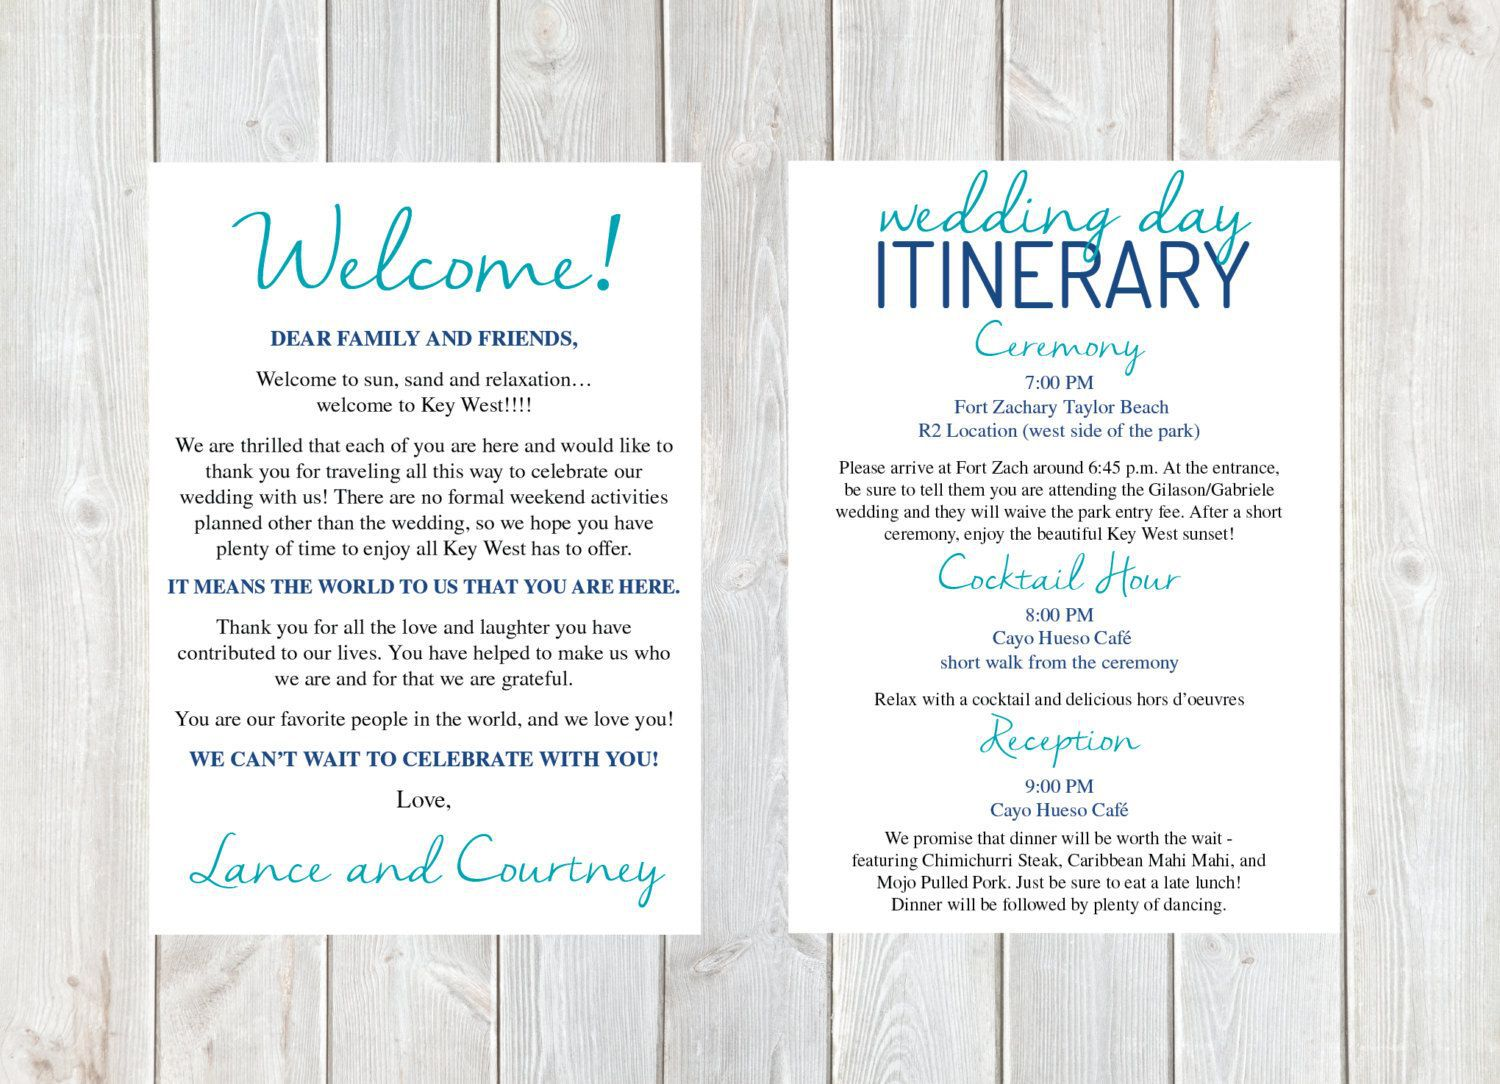 001 Amazing Wedding Guest Welcome Letter Template Sample Full